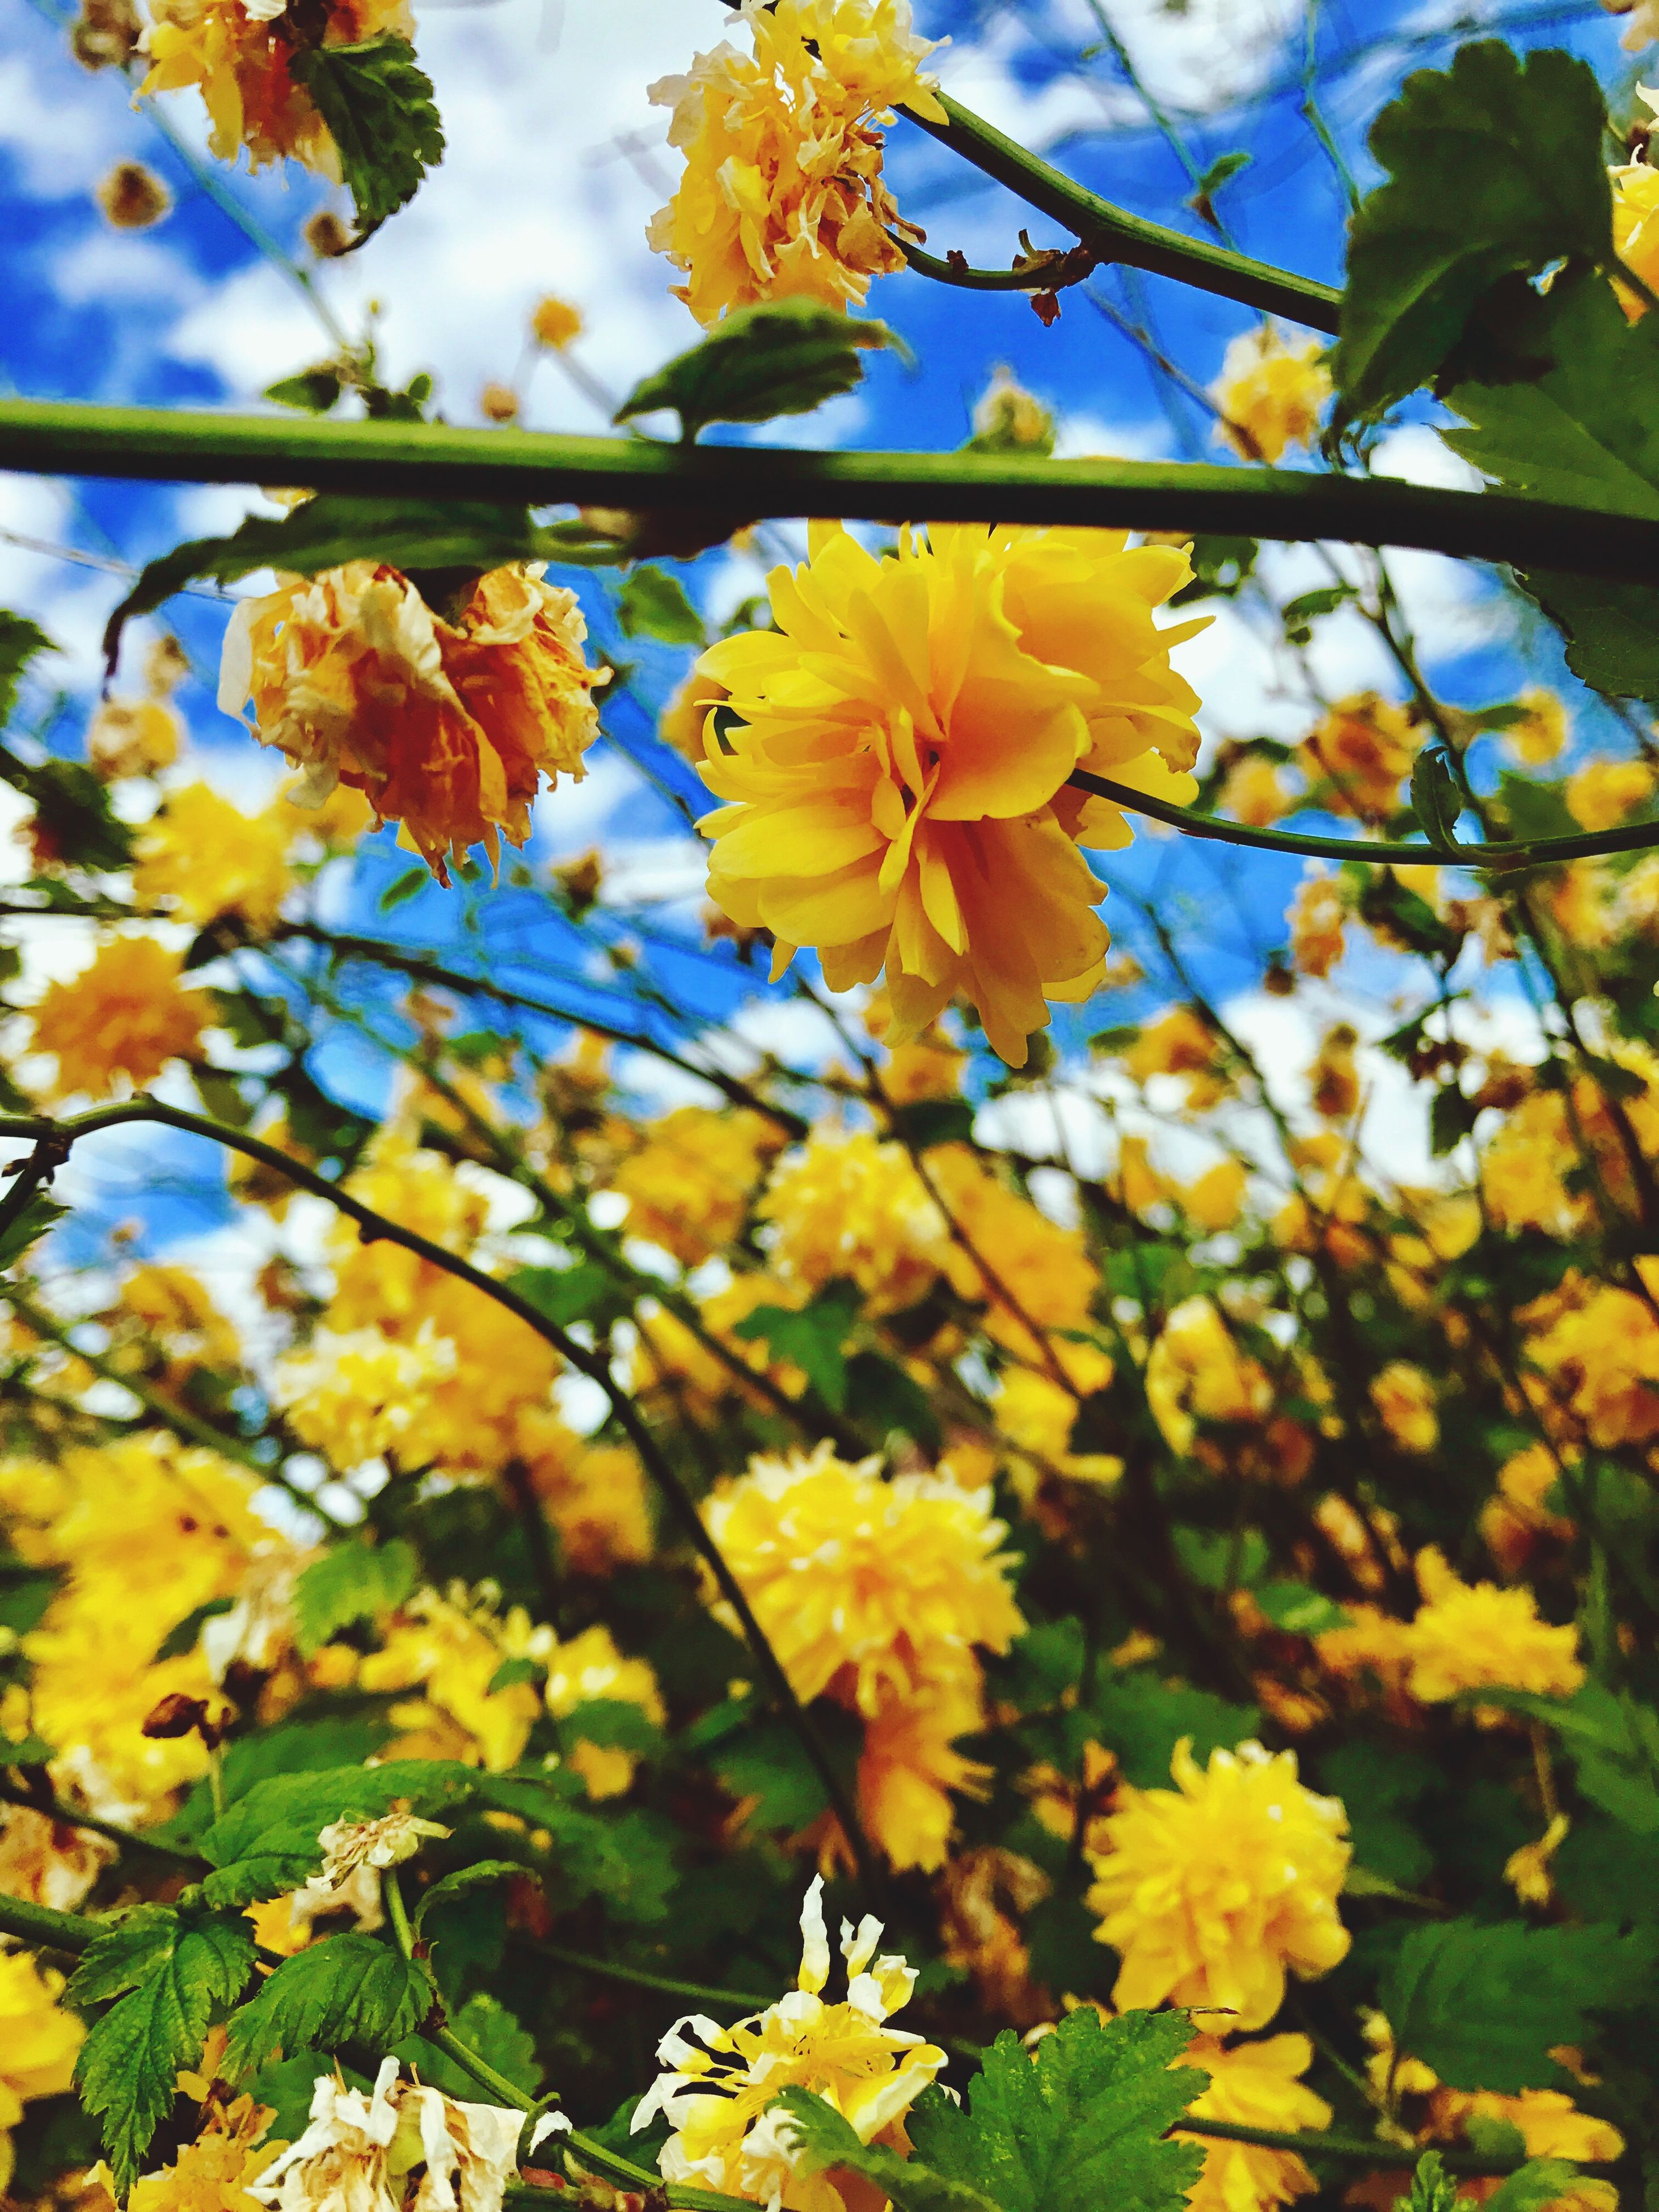 nature, beauty in nature, growth, flower, fragility, freshness, tree, no people, outdoors, day, springtime, petal, leaf, low angle view, branch, yellow, close-up, flower head, sky, backgrounds